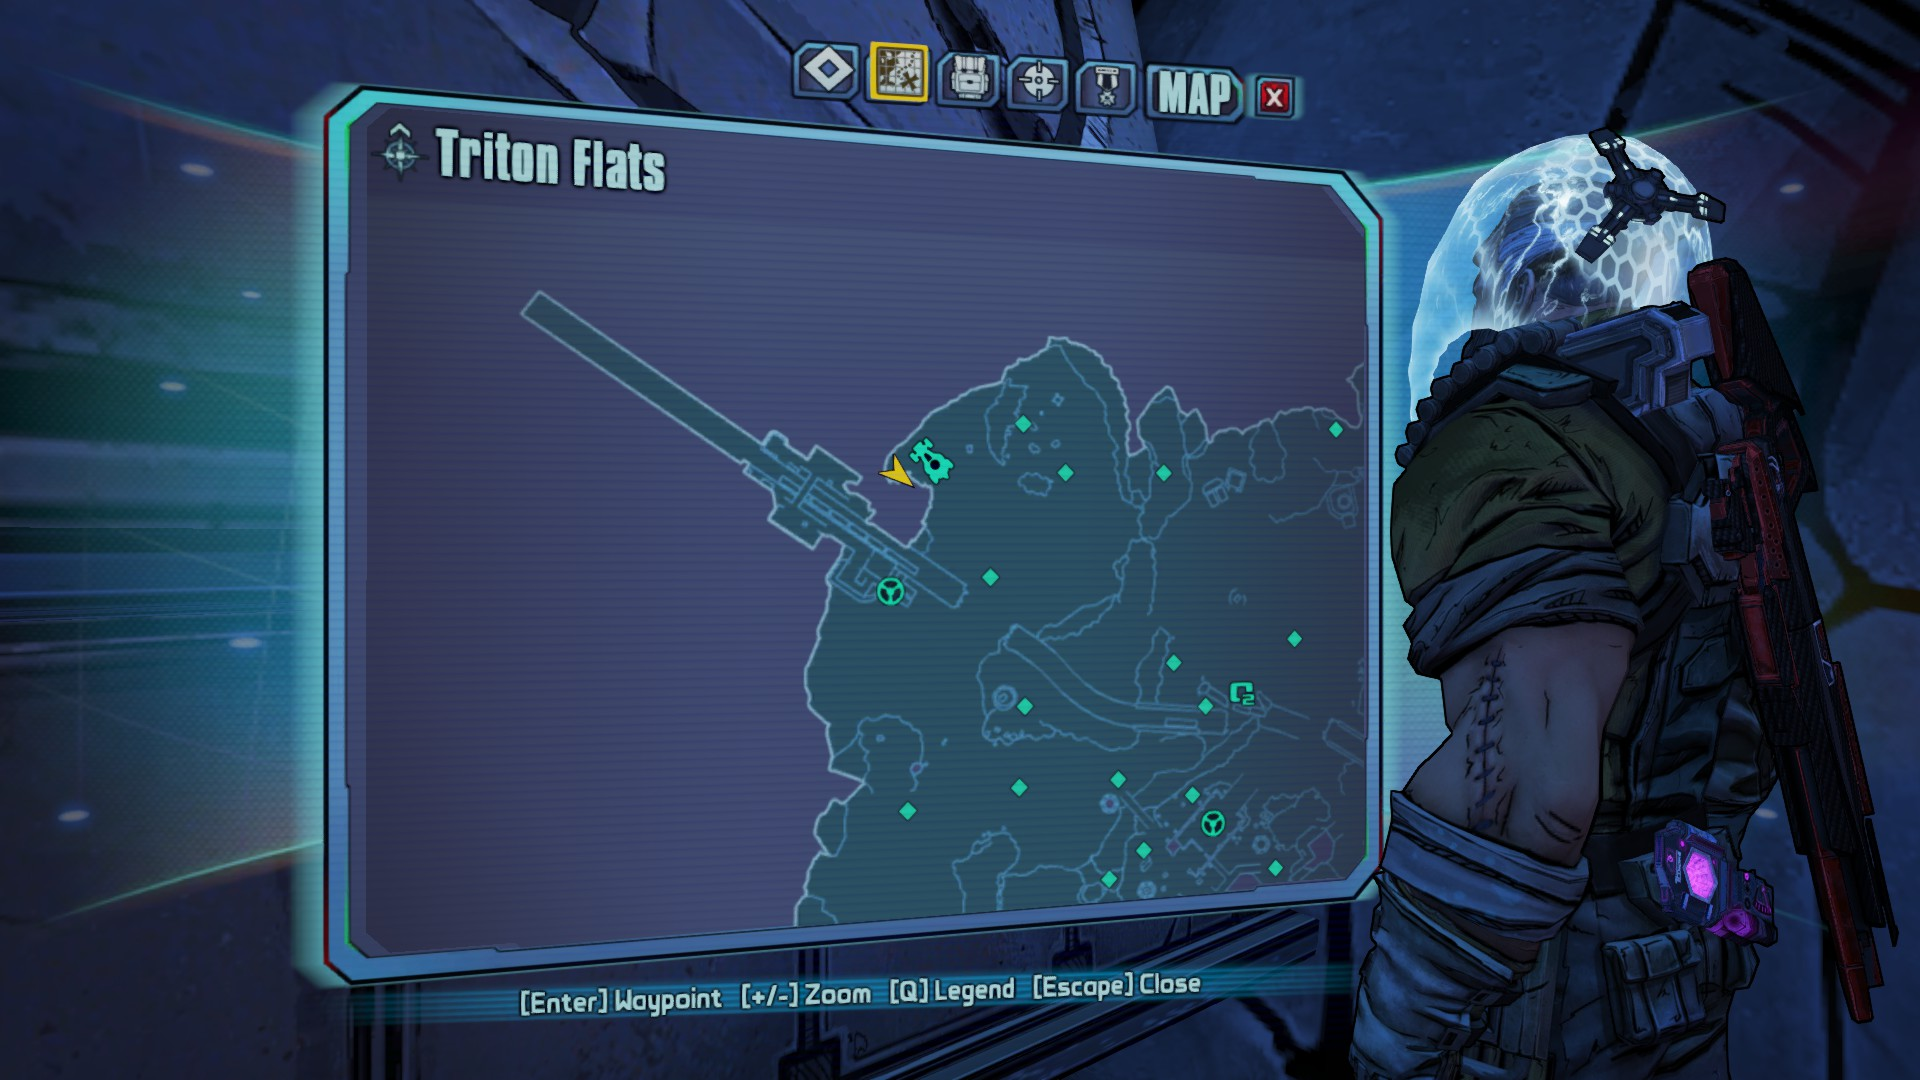 Steam Community :: Guide :: Vault Symbols, ECHOs, and Other Collectibles  Location Guide